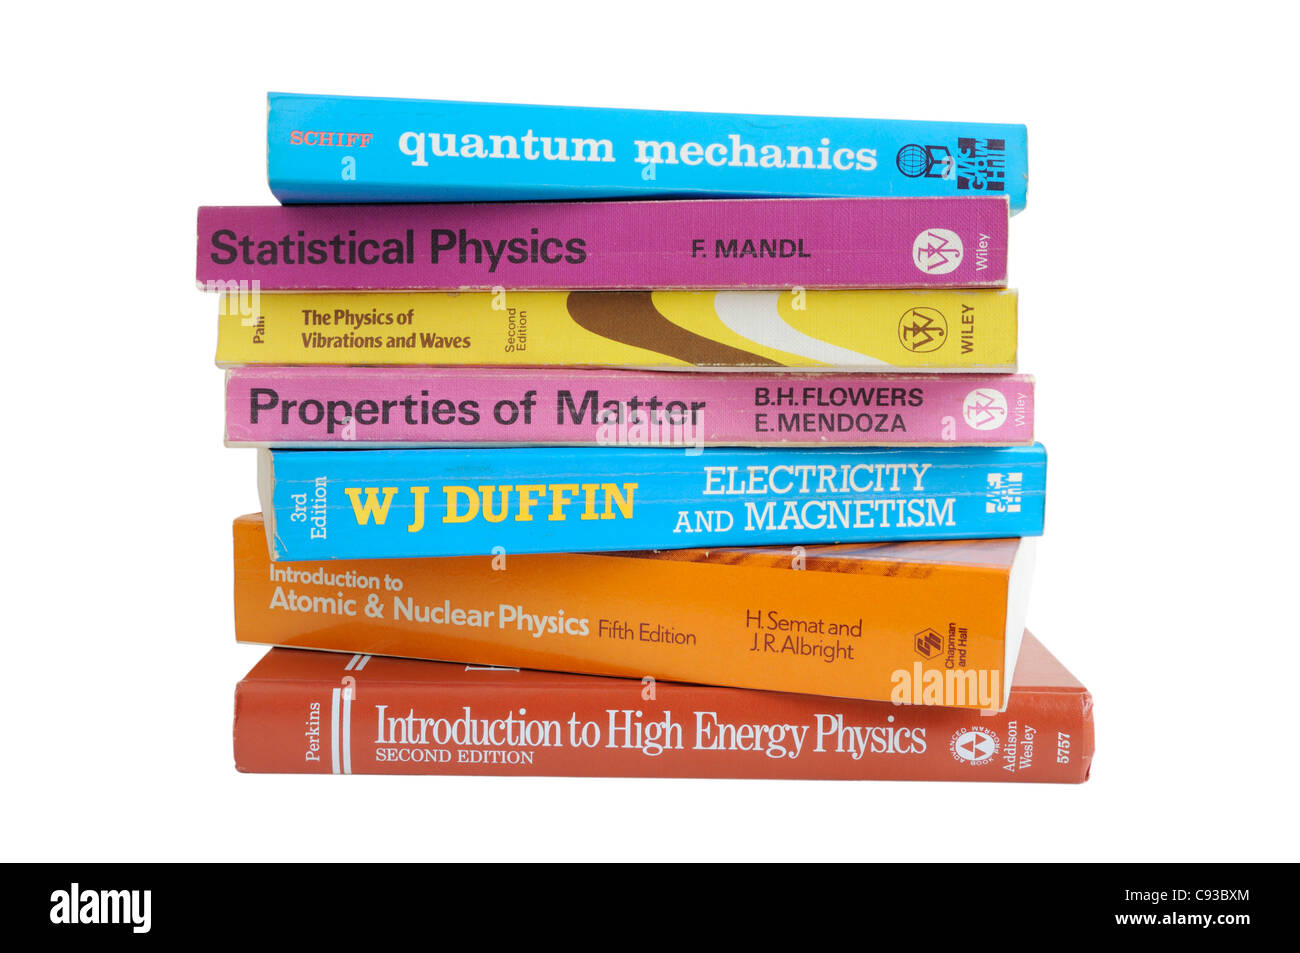 A pile of undergraduate physics text books - Stock Image